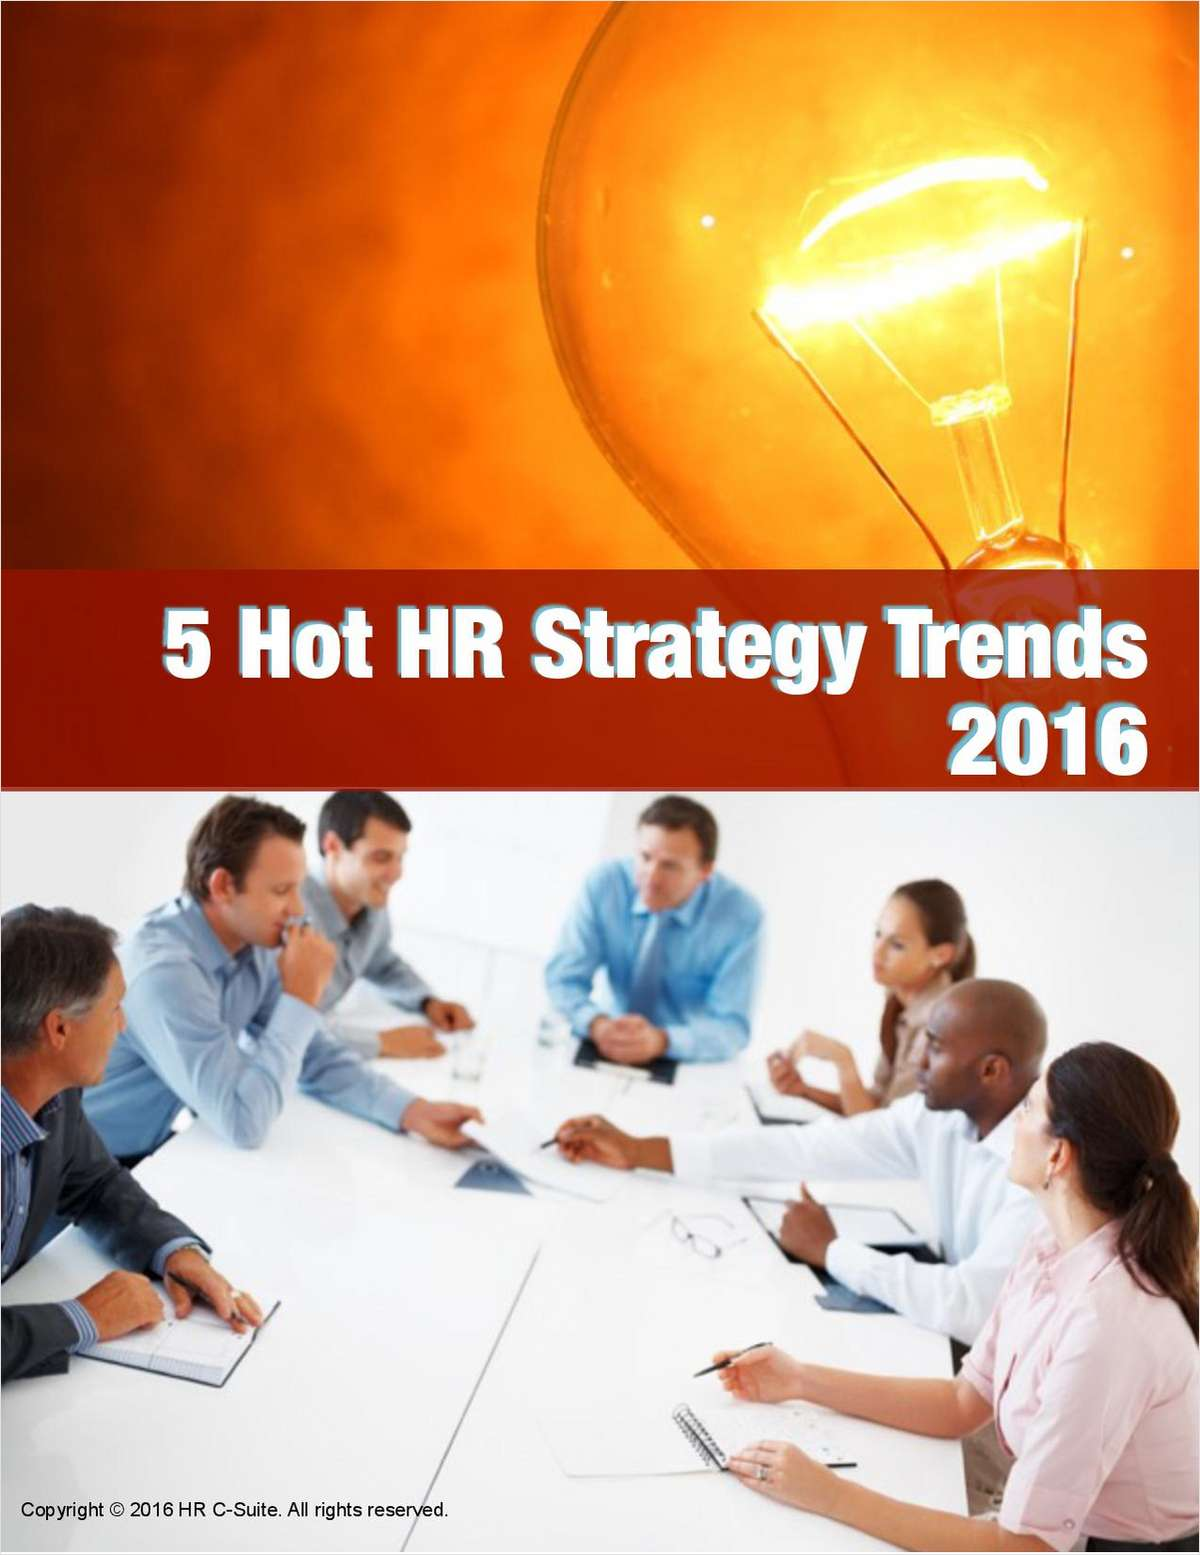 5 Hot HR Strategy Trends 2016    Inspiration to reimagine, harness change, and achieve more in human resources. Learn More >